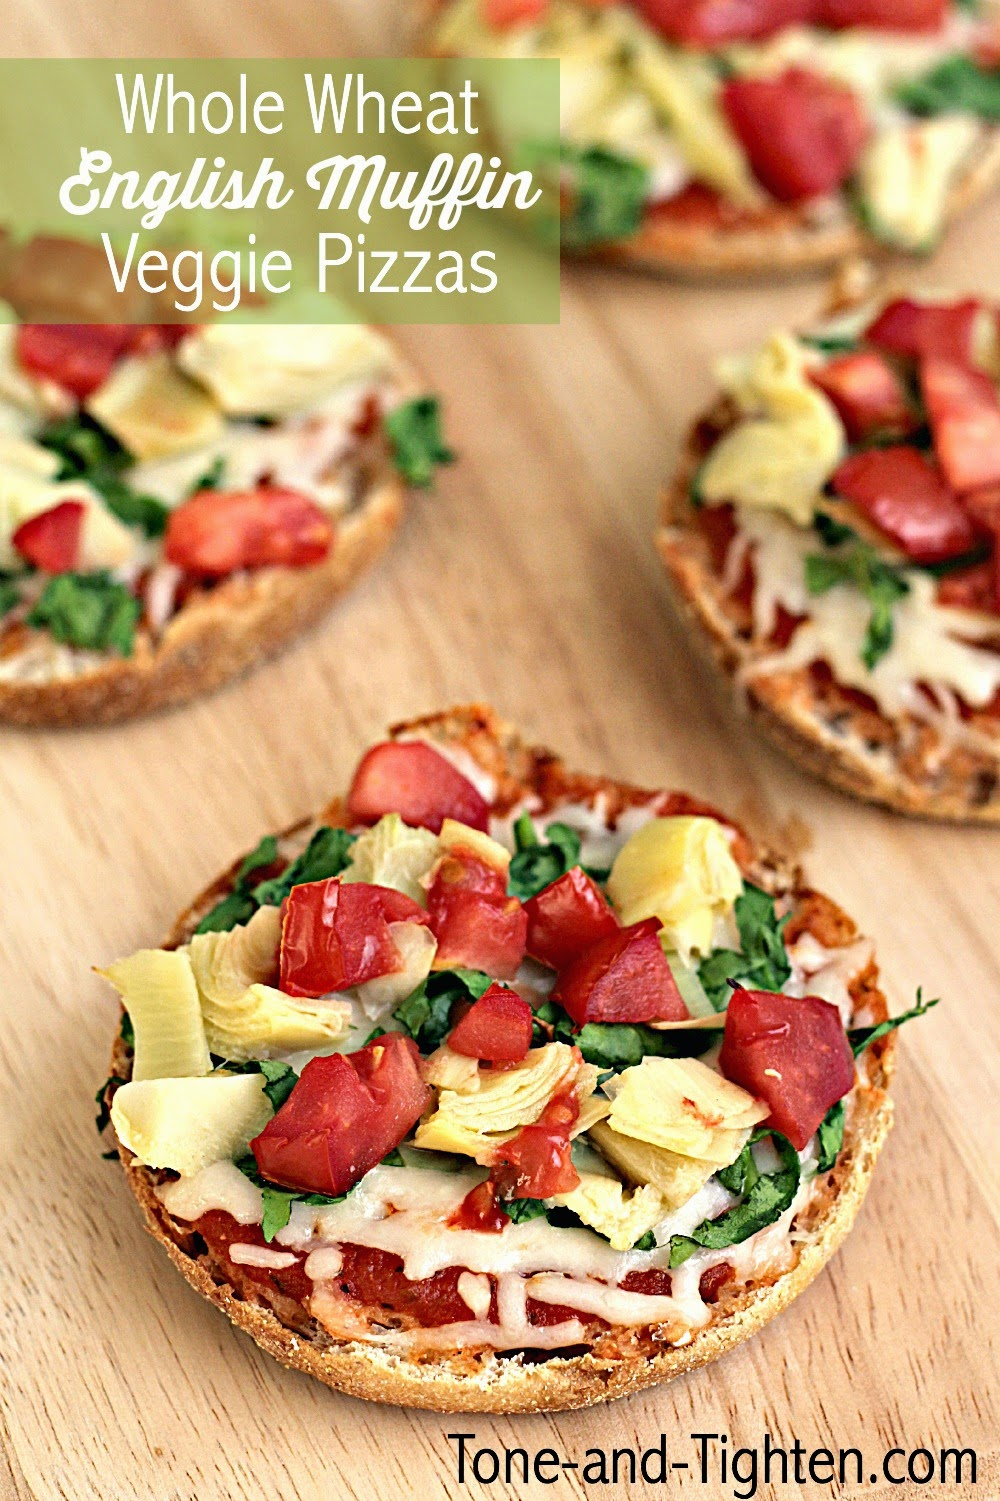 Whole wheat english muffin vegetable pizza tone and tighten eating healthy when you are short on time can sometimes be a challenge but this recipe will take care of that issue english muffin pizzas could not be forumfinder Choice Image